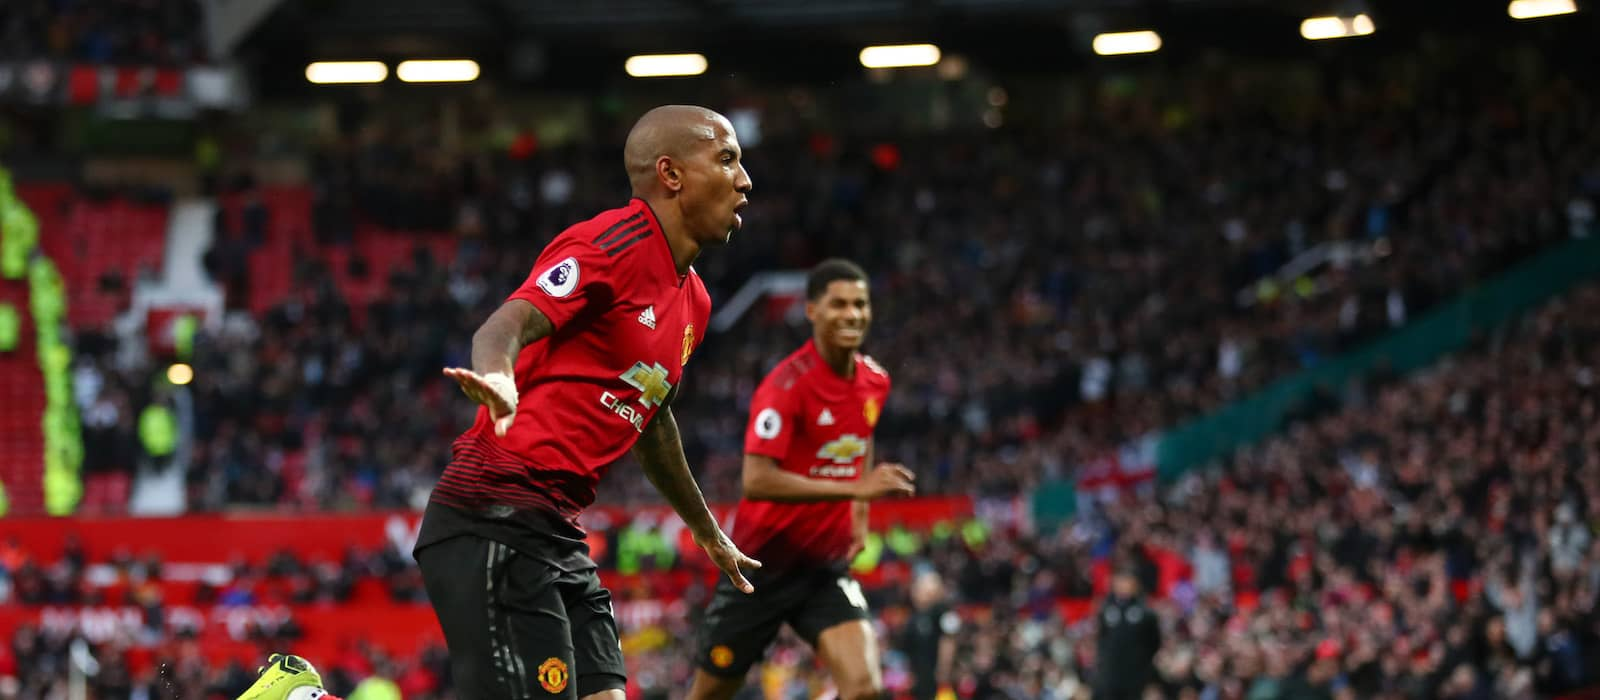 Ashley Young, Jesse Lingard, Marcus Rashford, David de Gea, Nemanja Matic and Ander Herrera to start against Liverpool – report